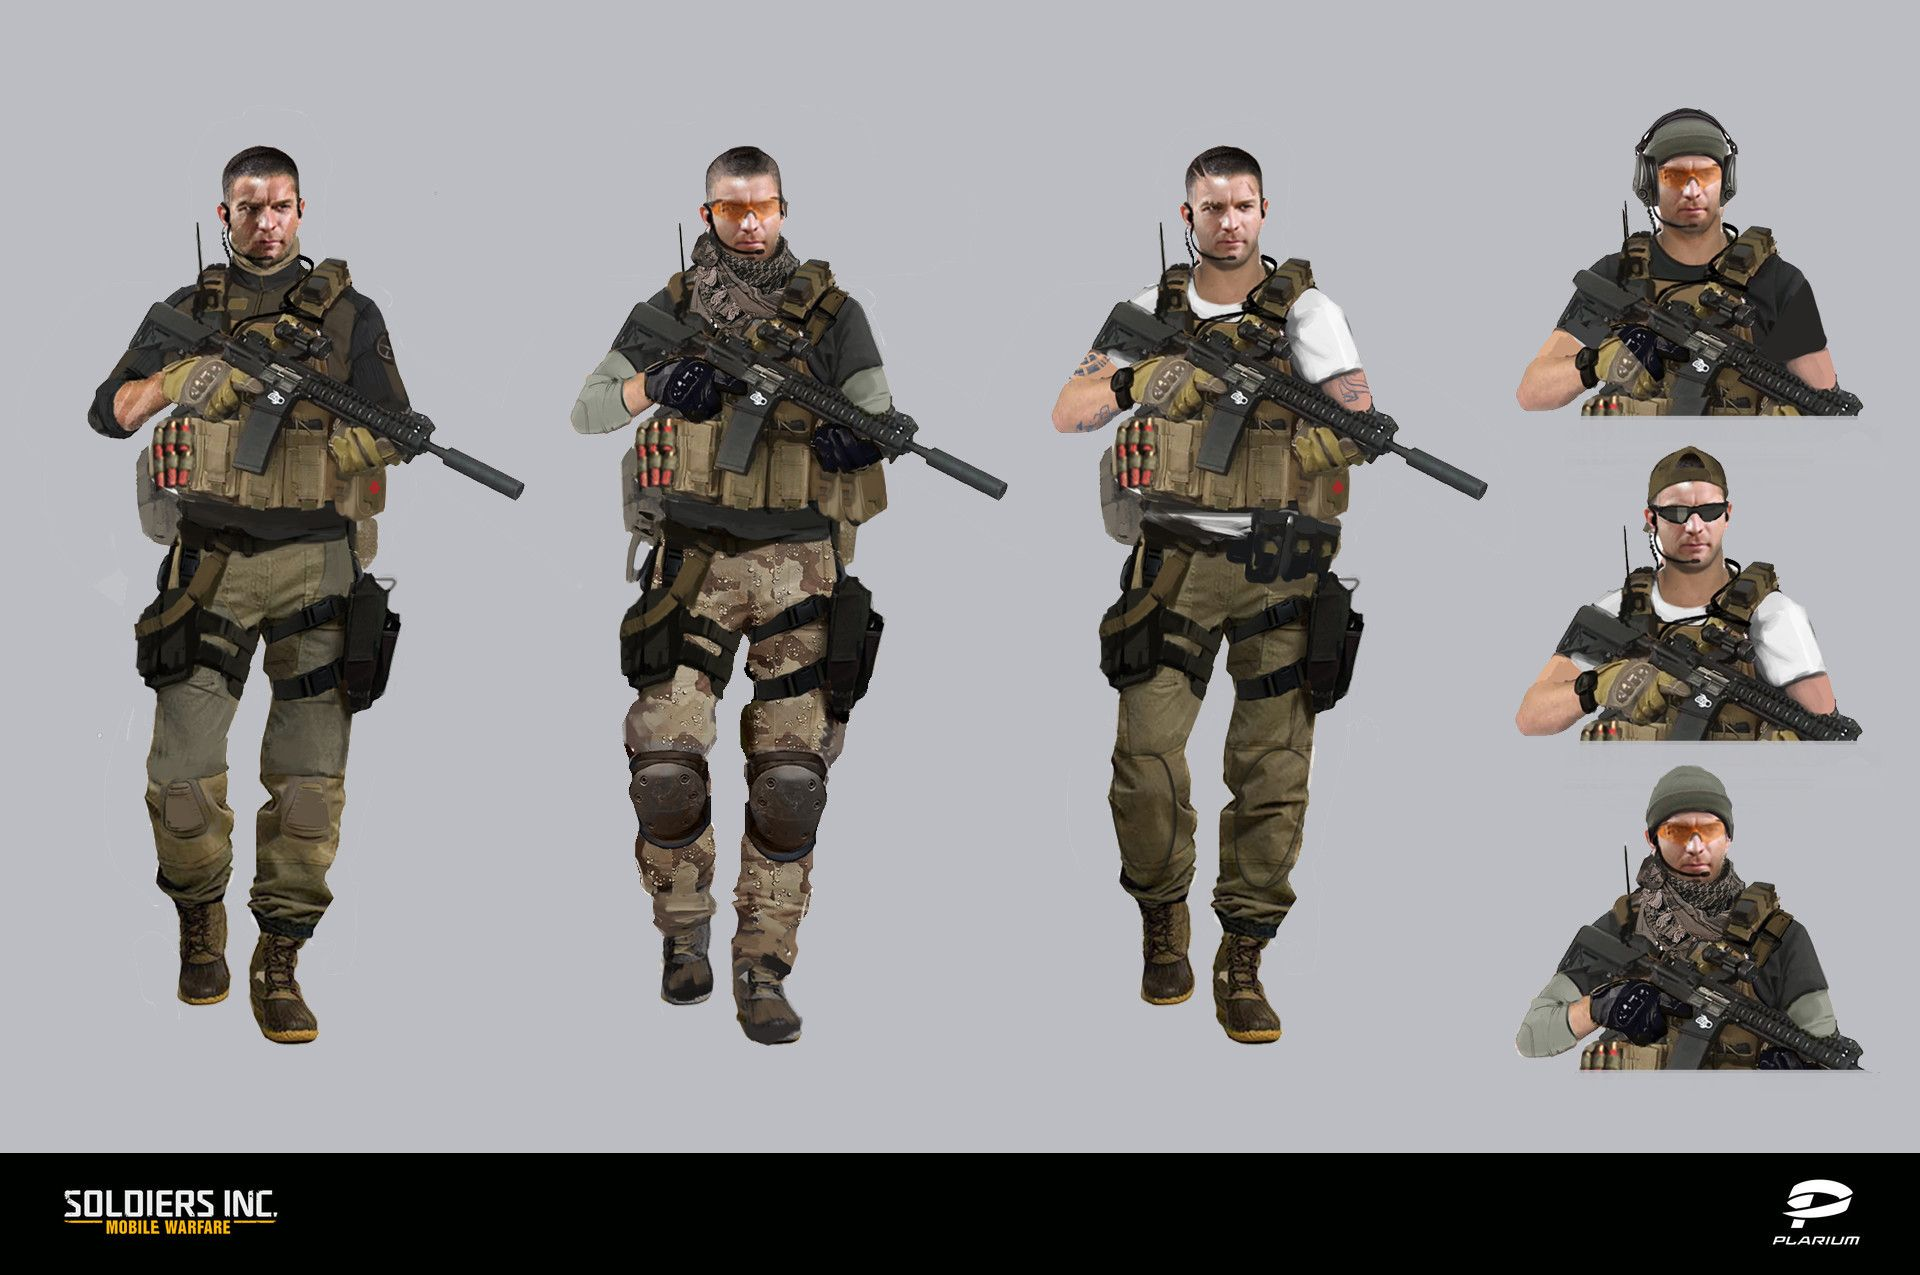 ArtStation - Soldiers Inc  Characters Concept art, Valentin